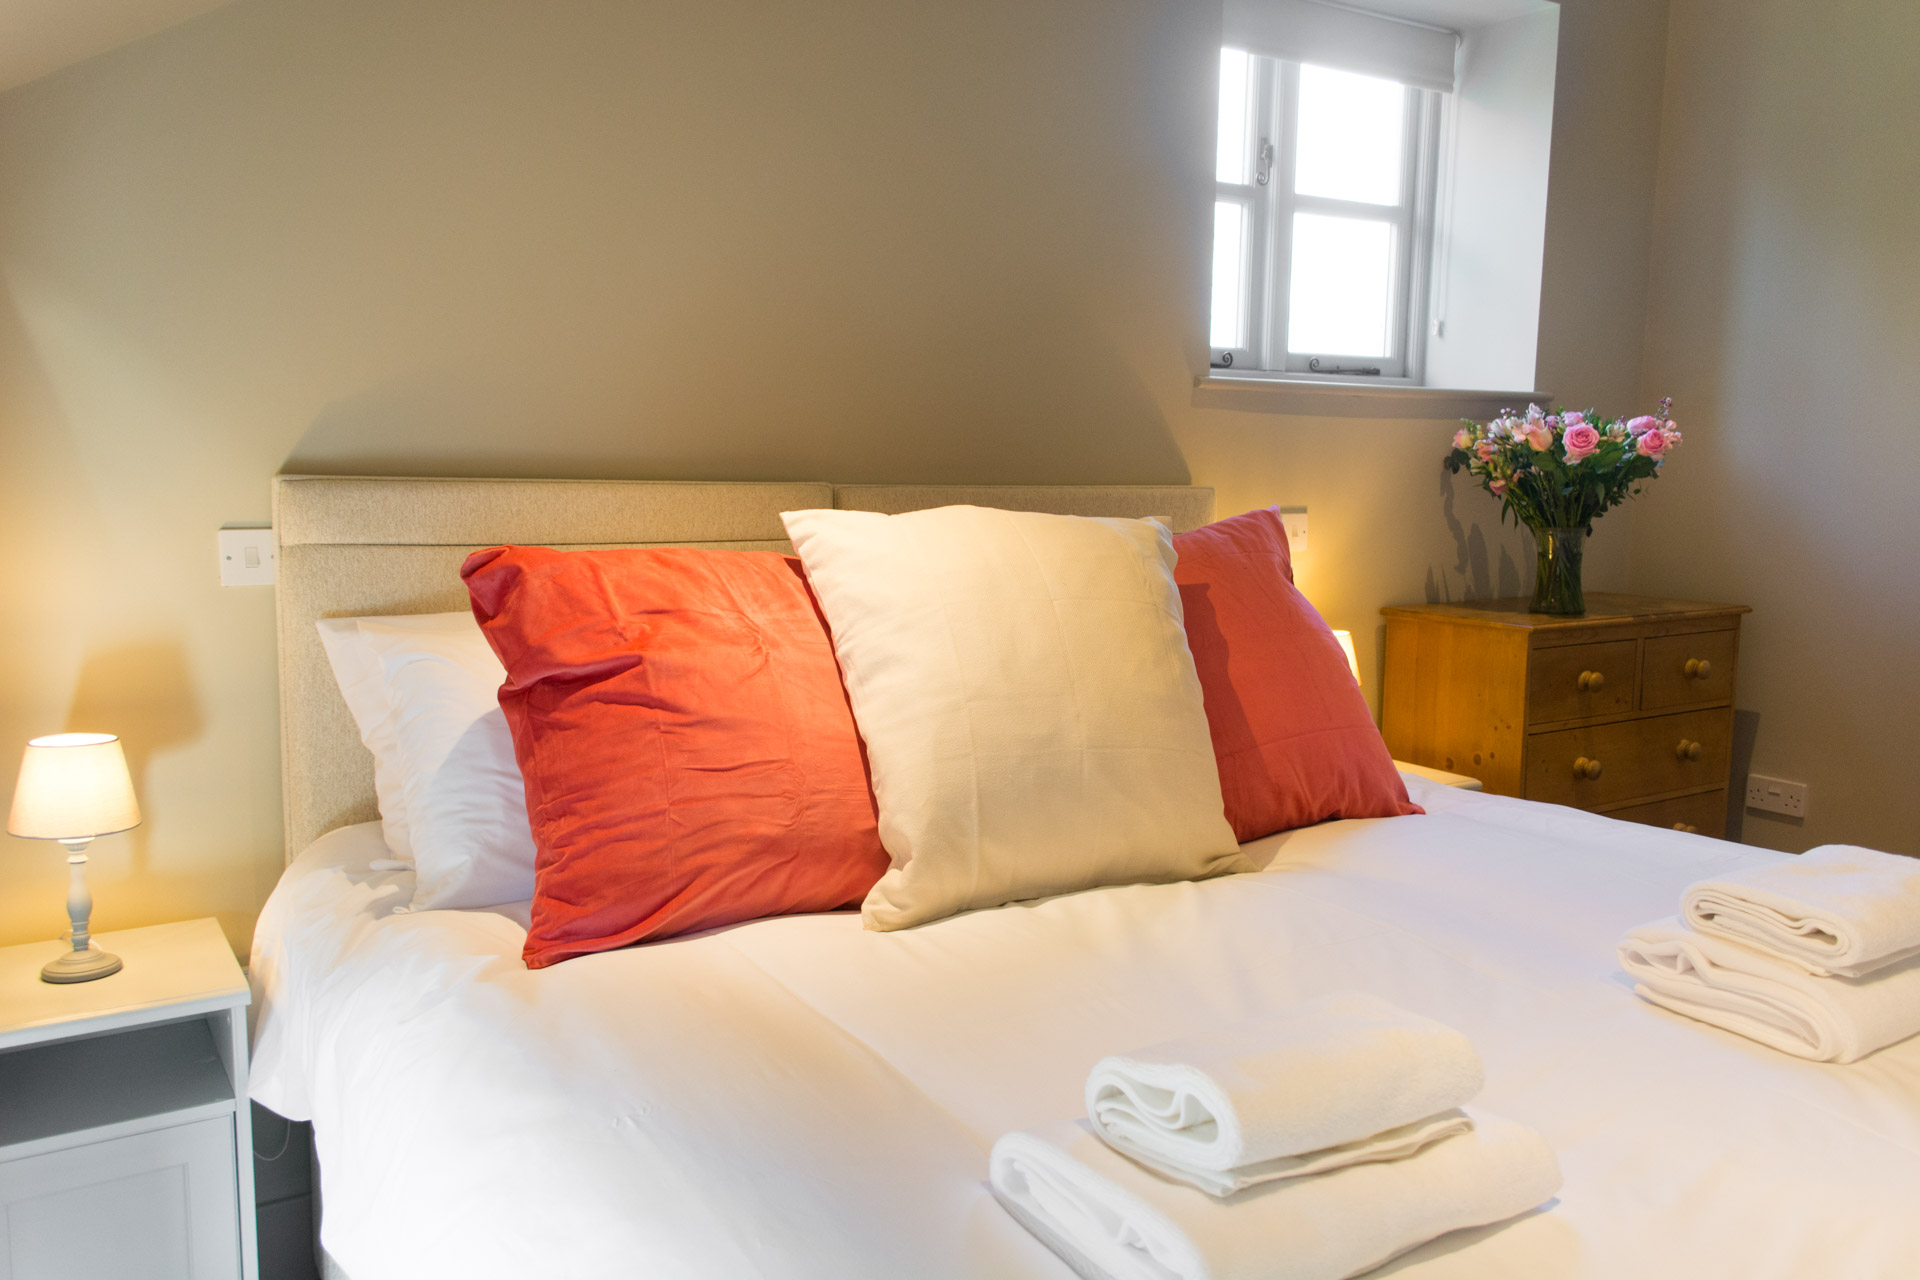 Close up of large red and white pillows with towels laid on the bed.